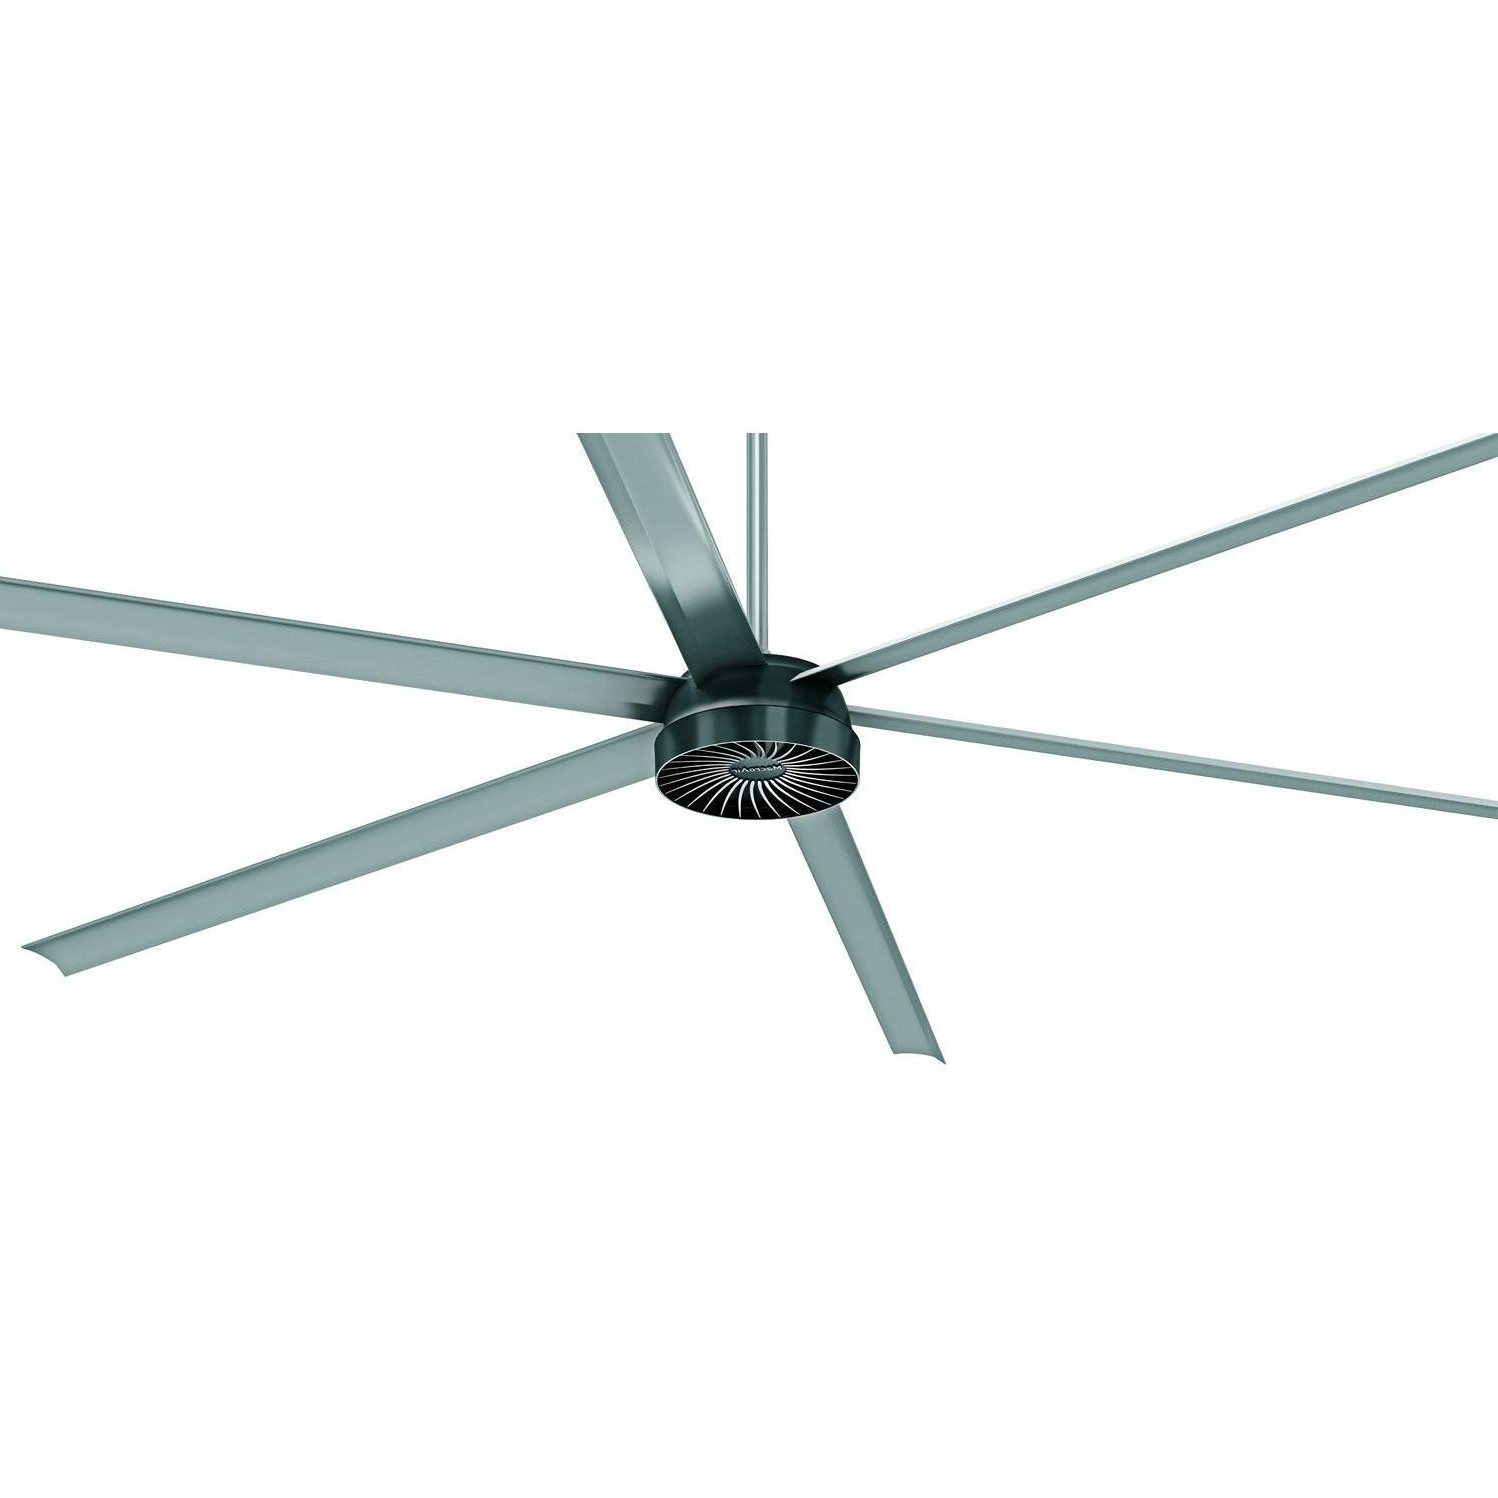 Outdoor Ceiling Fans With Aluminum Blades Intended For 2019 Macroair Airvolution D 370 10 Ft (View 8 of 20)